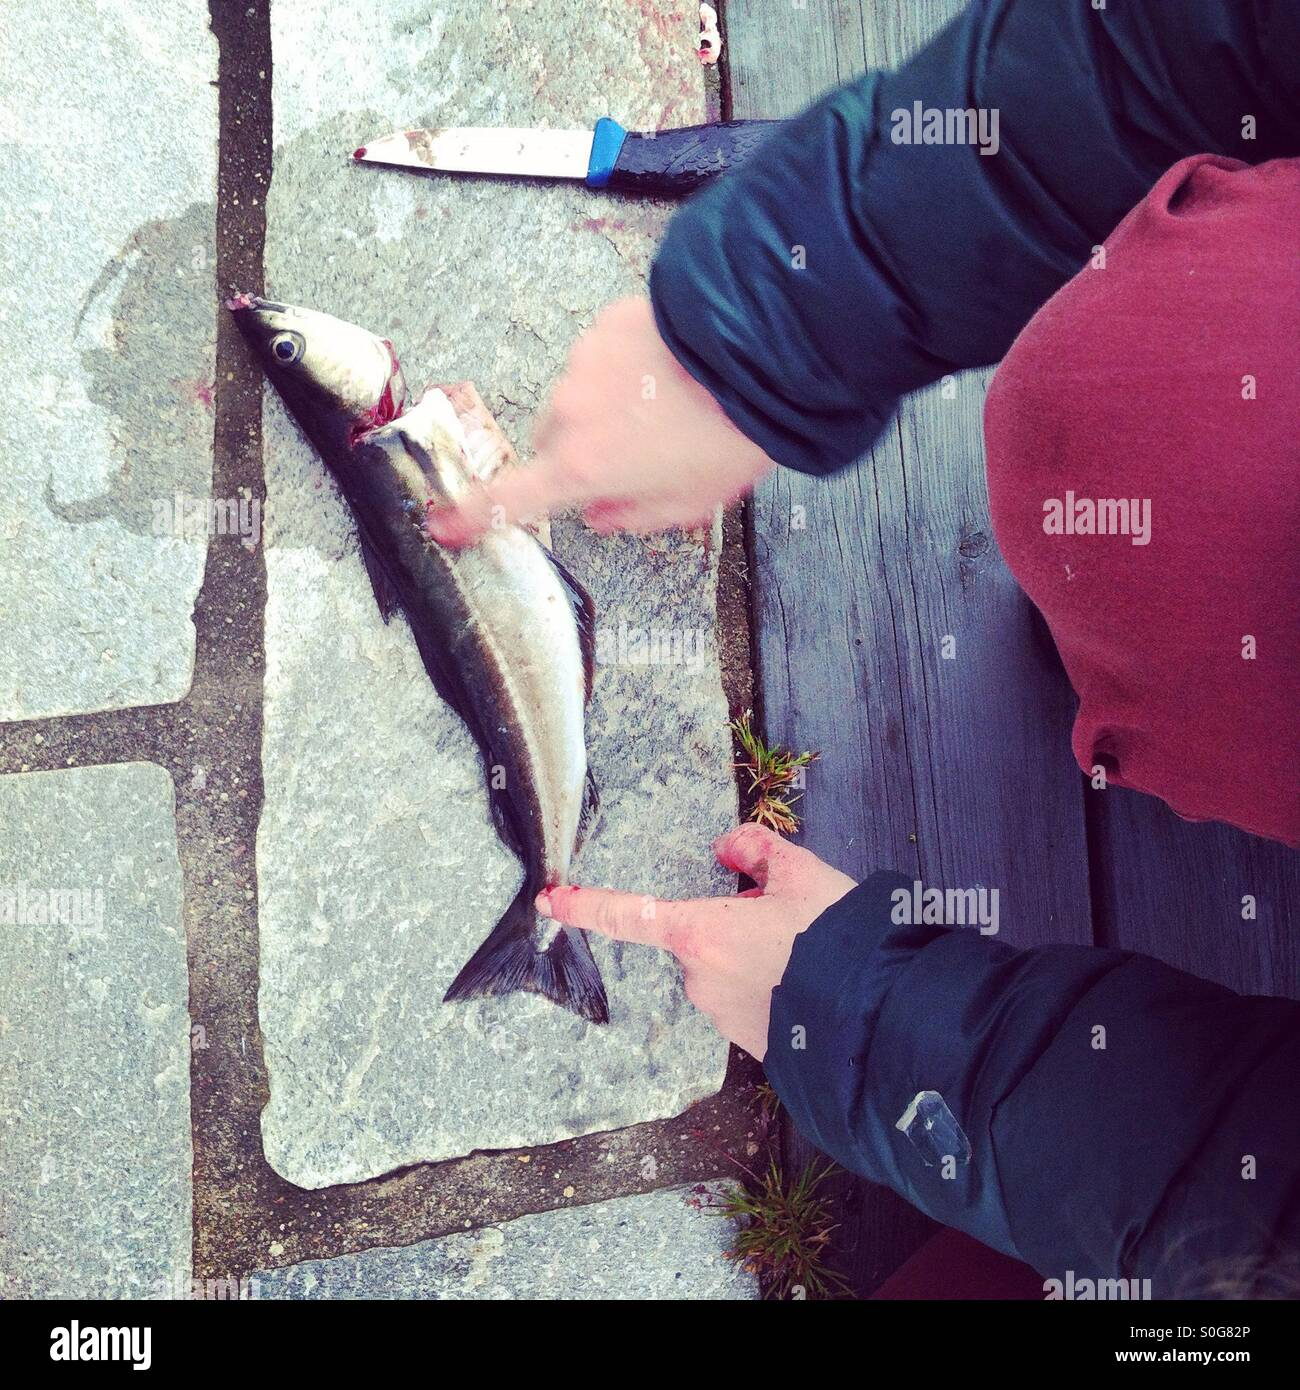 Girl pointing at fish, showing how to gut an fillet. - Stock Image